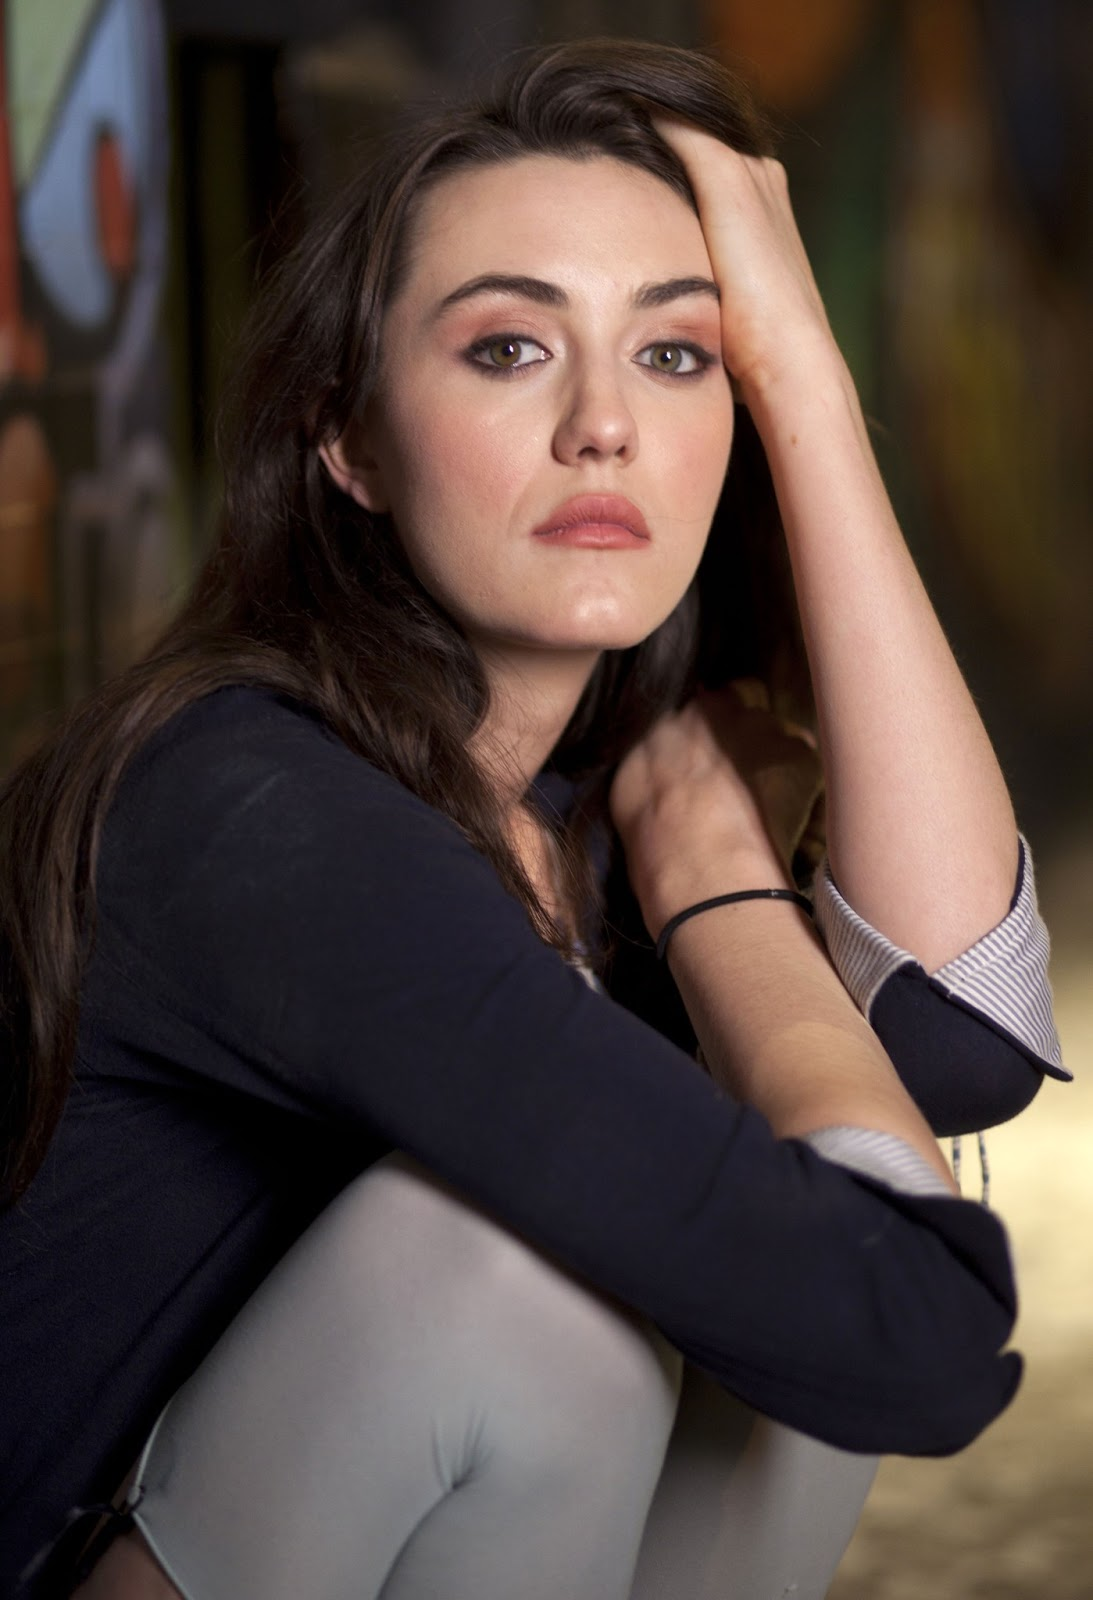 madeline zima hot - photo #24